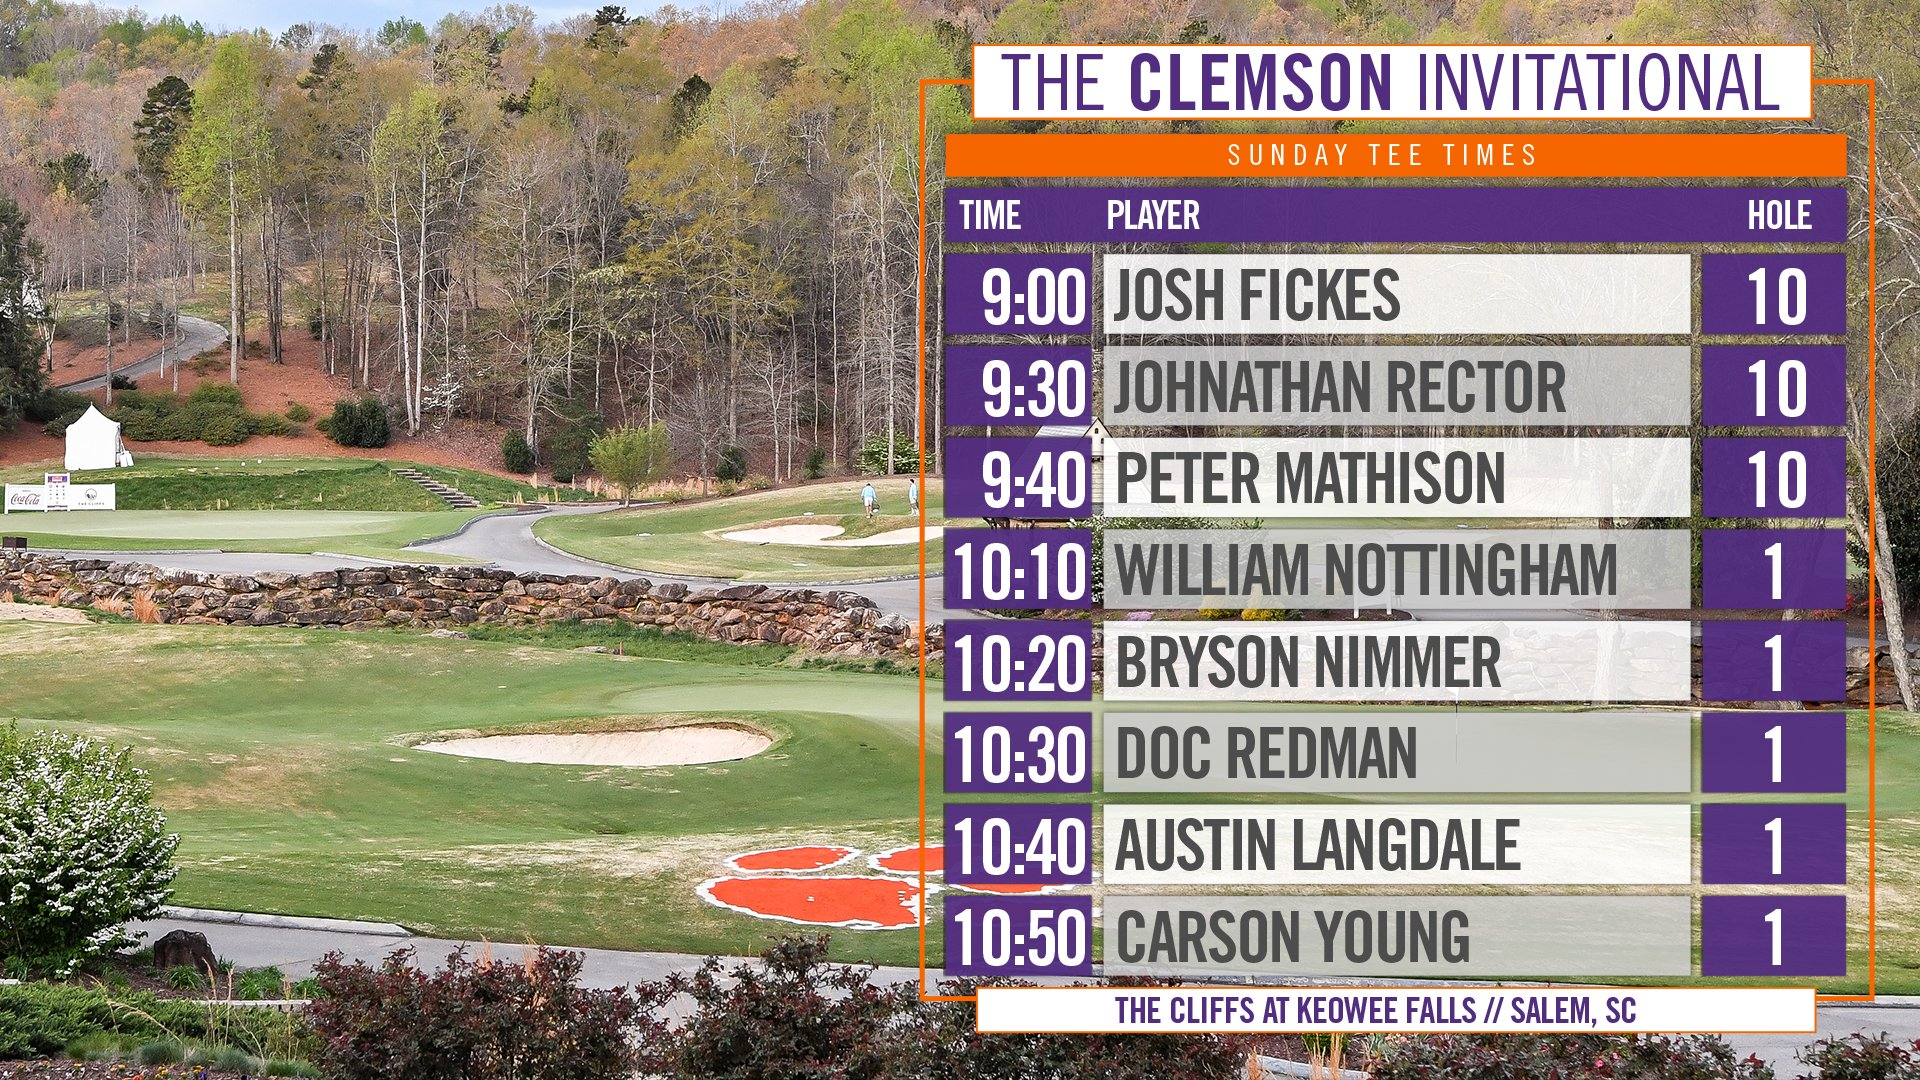 The final day of the #ClemsonInvitational is here! Follow along at https://t.co/zQjxP6fEmW   👇Sunday Tee Times👇 https://t.co/JPa32bPo1A